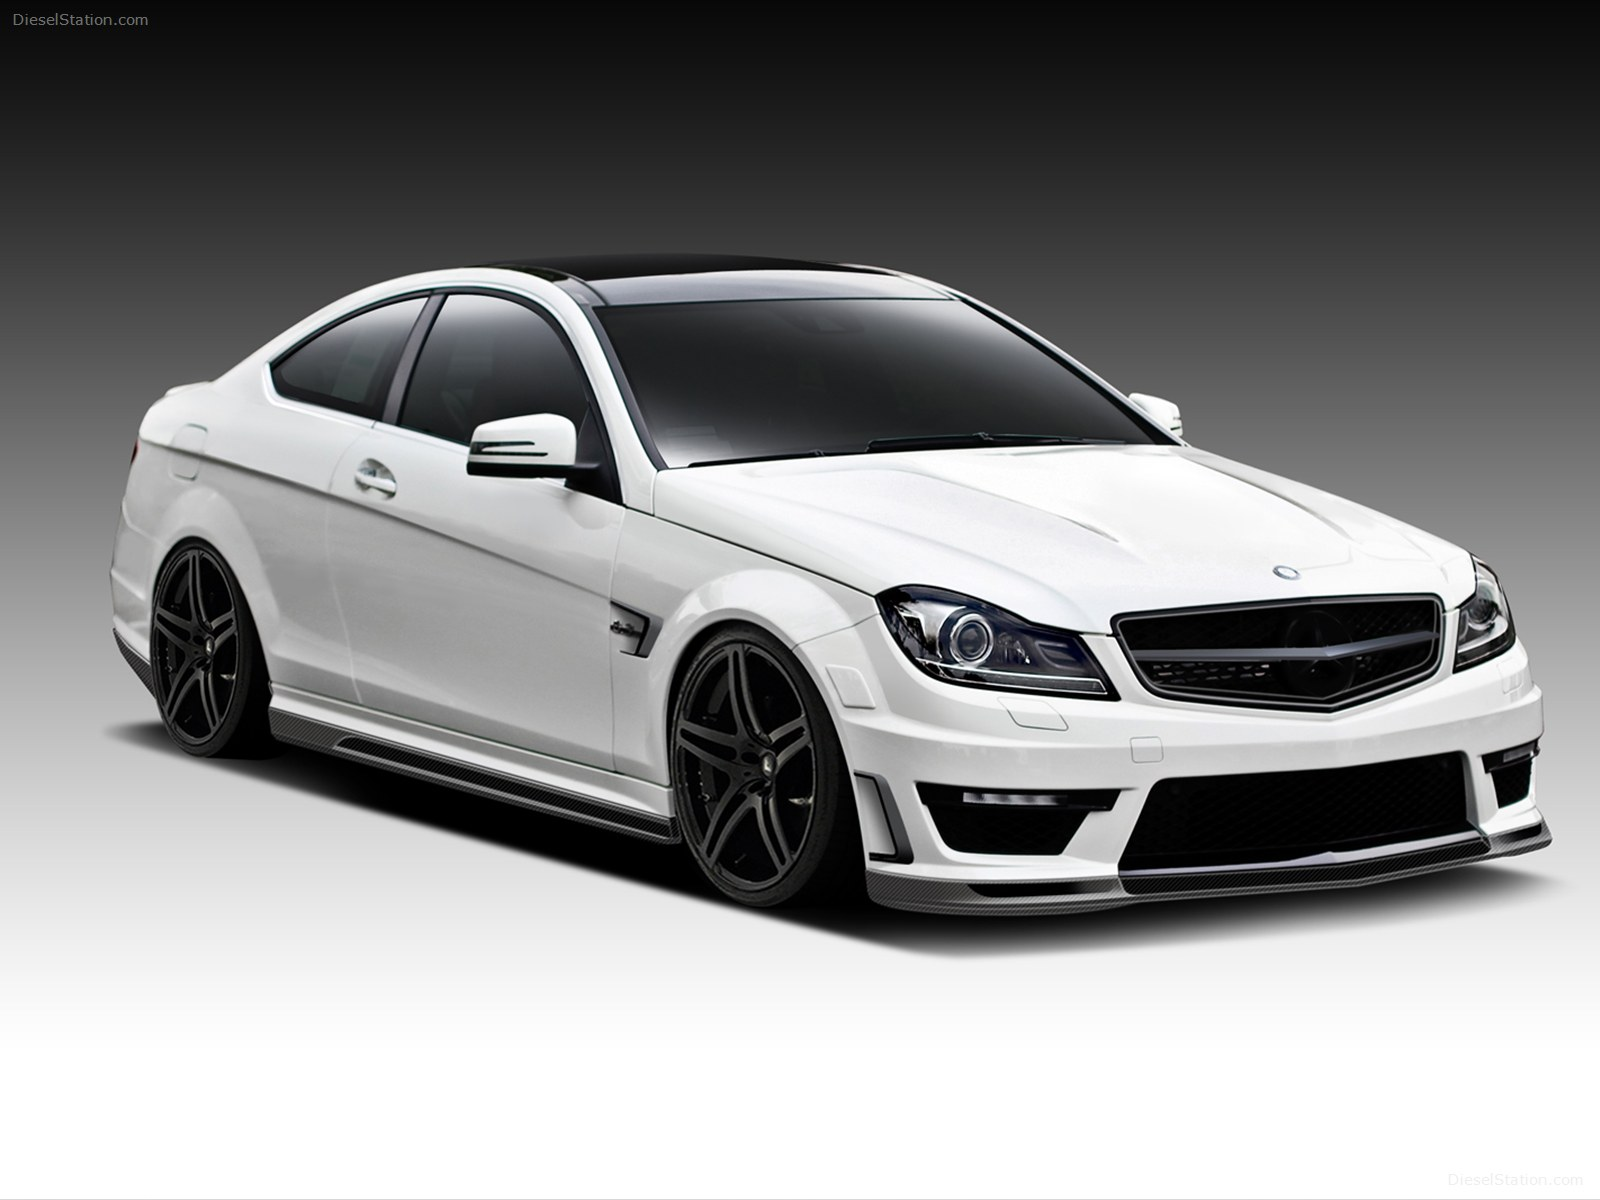 Benz coupe photo - 4